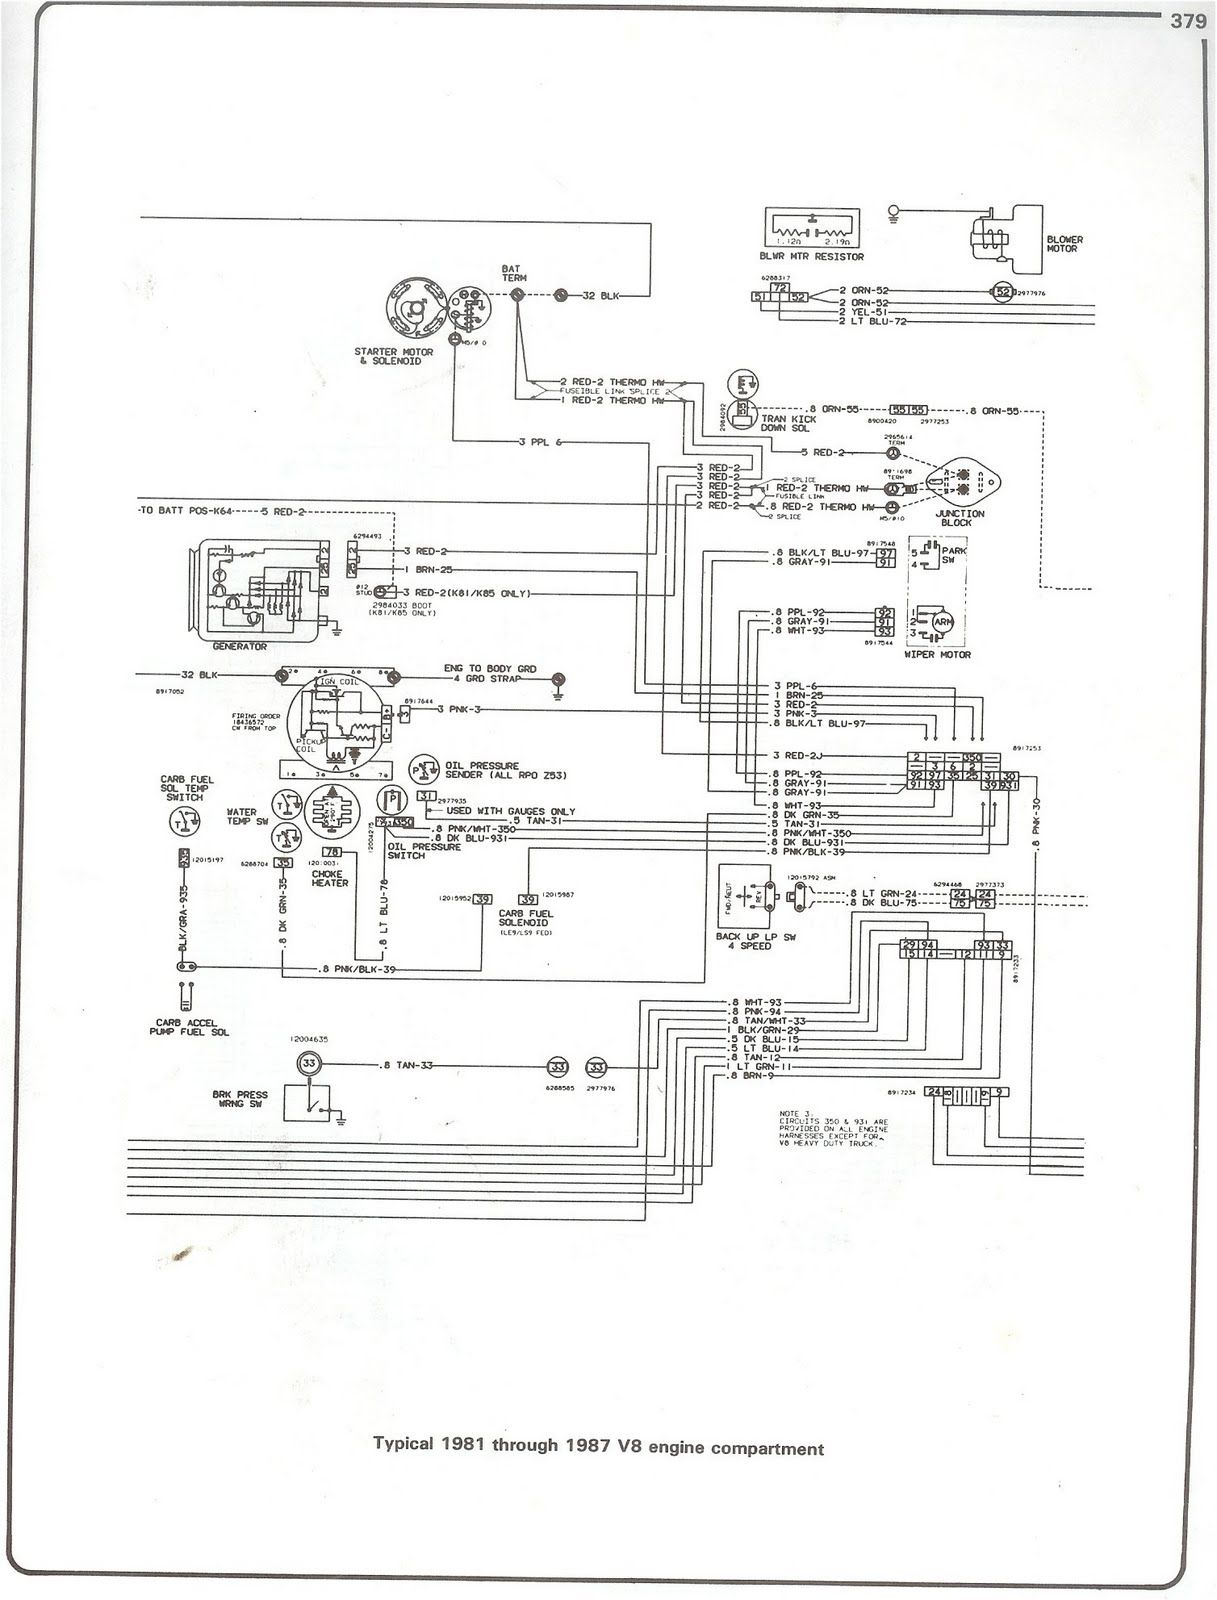 This is engine compartment wiring diagram for 1981 trough 1987 Chevrolet V8  Truck. Description from autowiringdiagra… | 1979 chevy truck, Chevy trucks,  Truck engine Pinterest